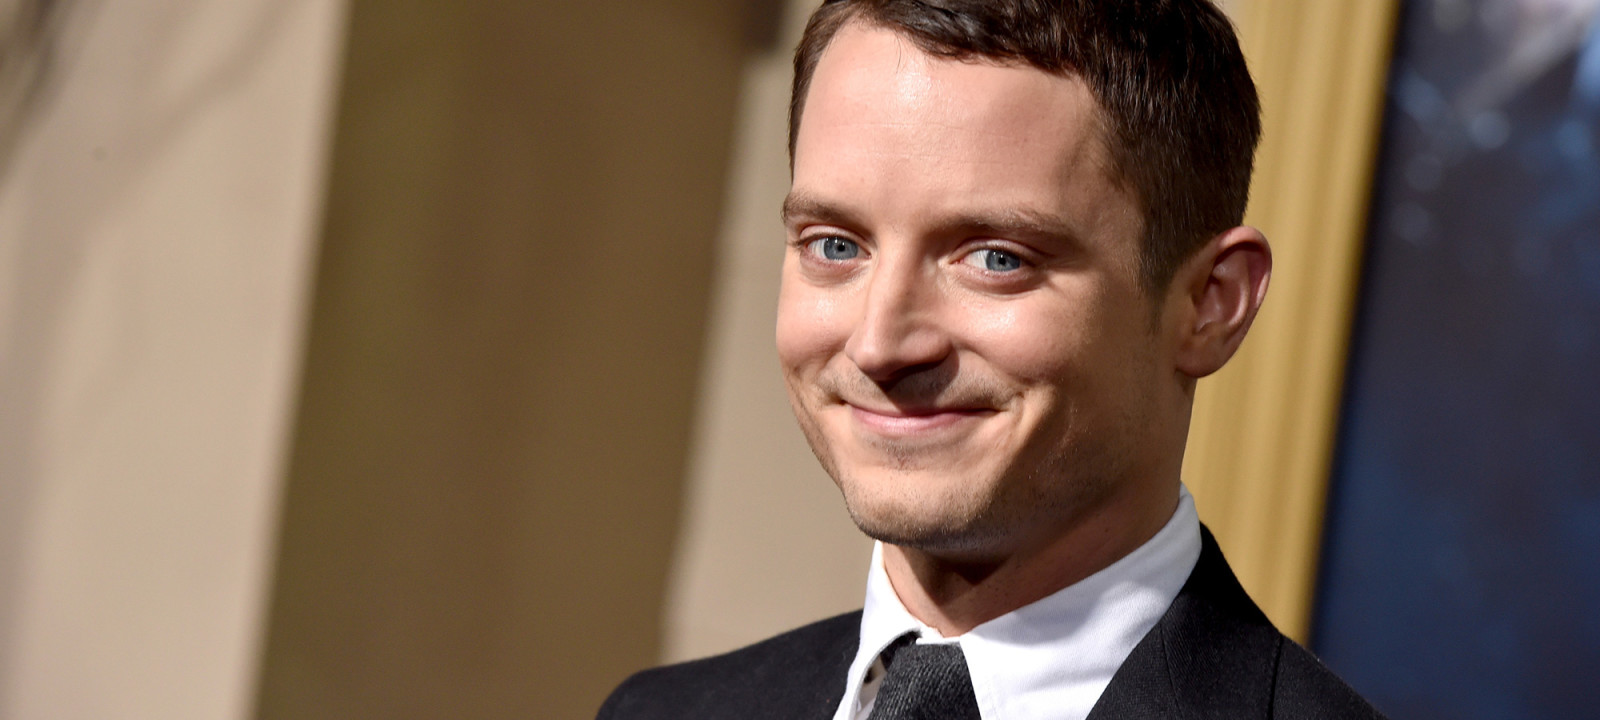 anglo_2000x1125_elijahwood